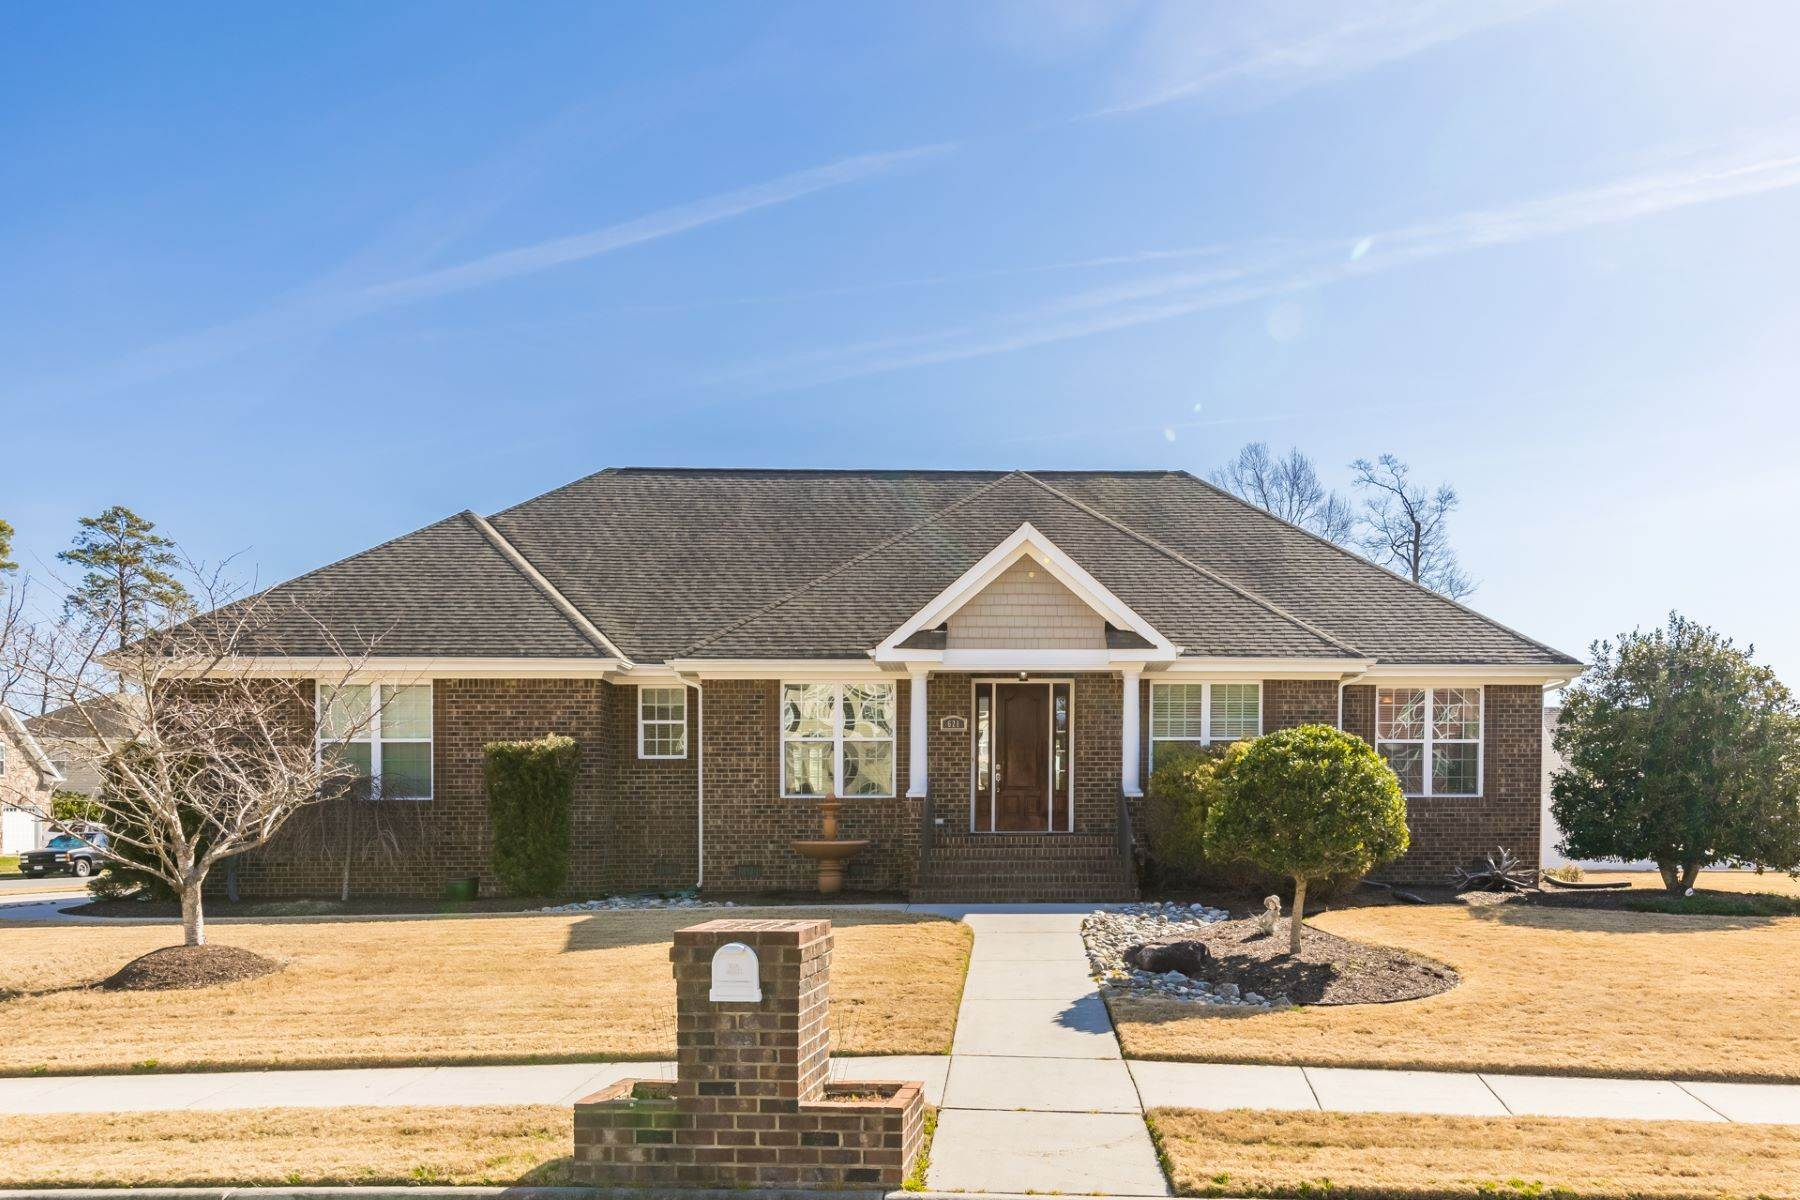 Single Family Homes for Sale at 621 Flint Chip Dr, Chesapeake 621 Flint Chip Drive Chesapeake, Virginia 23320 United States